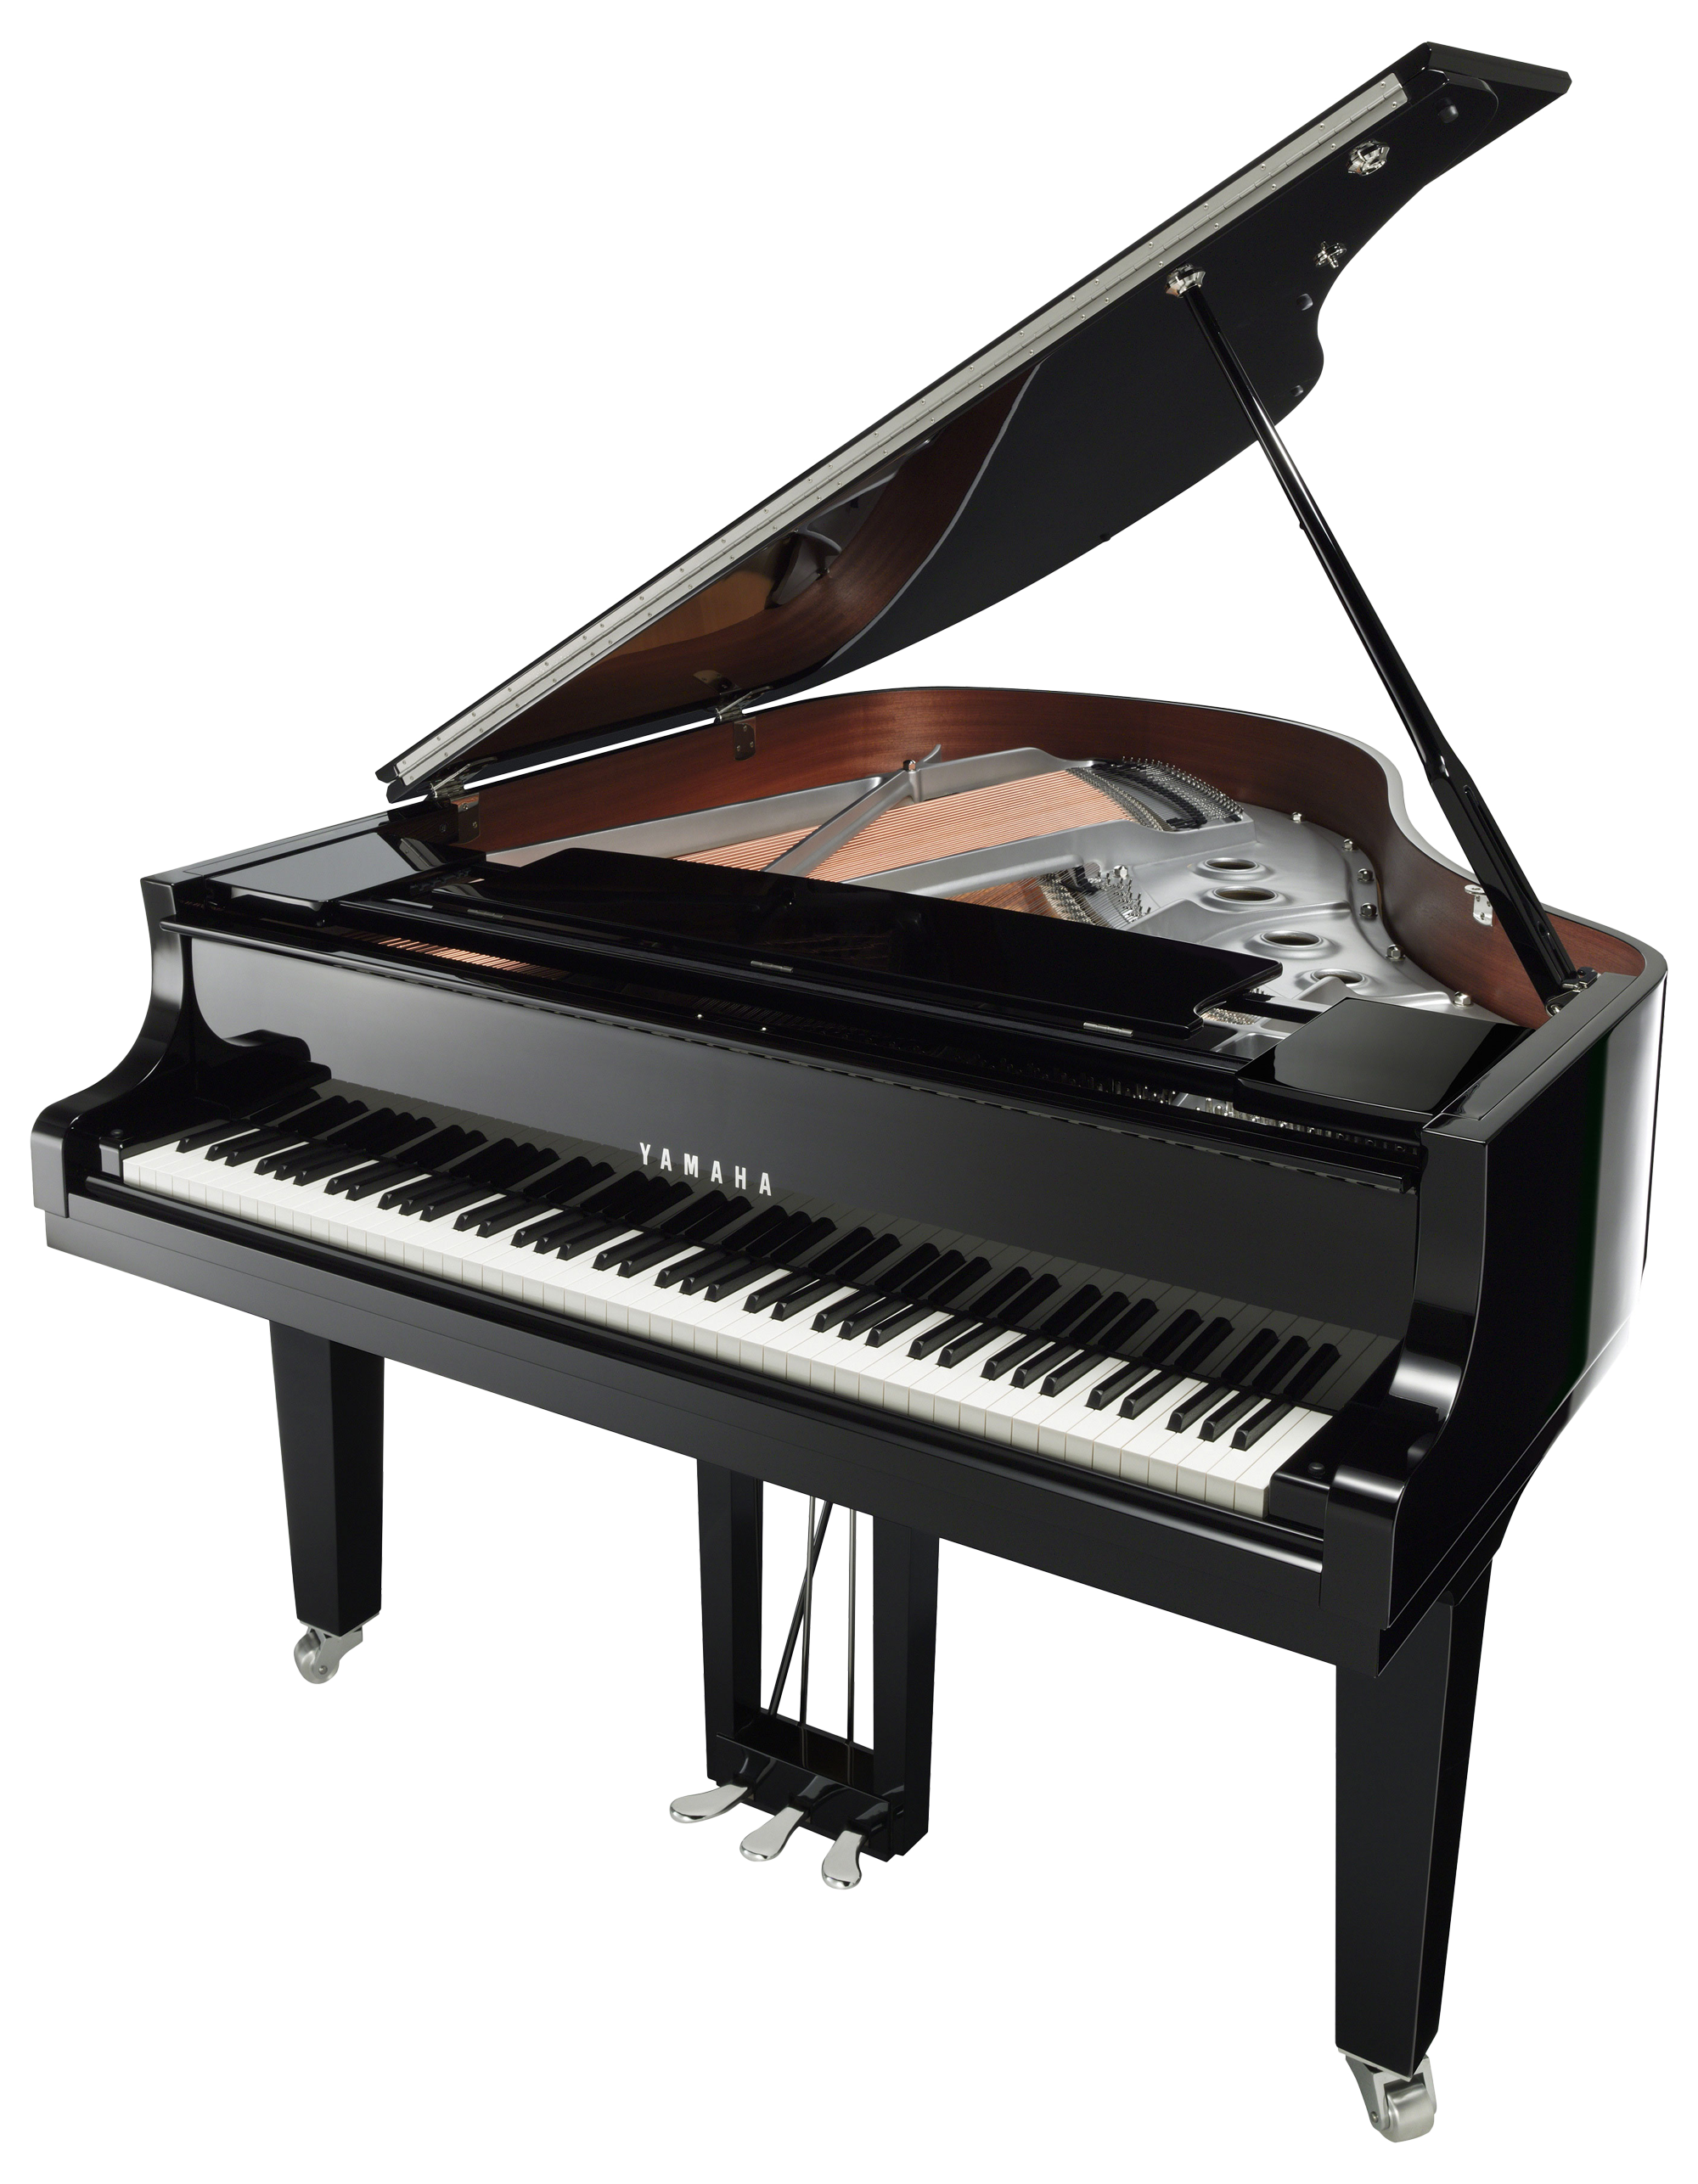 Image of a Yamaha grand piano